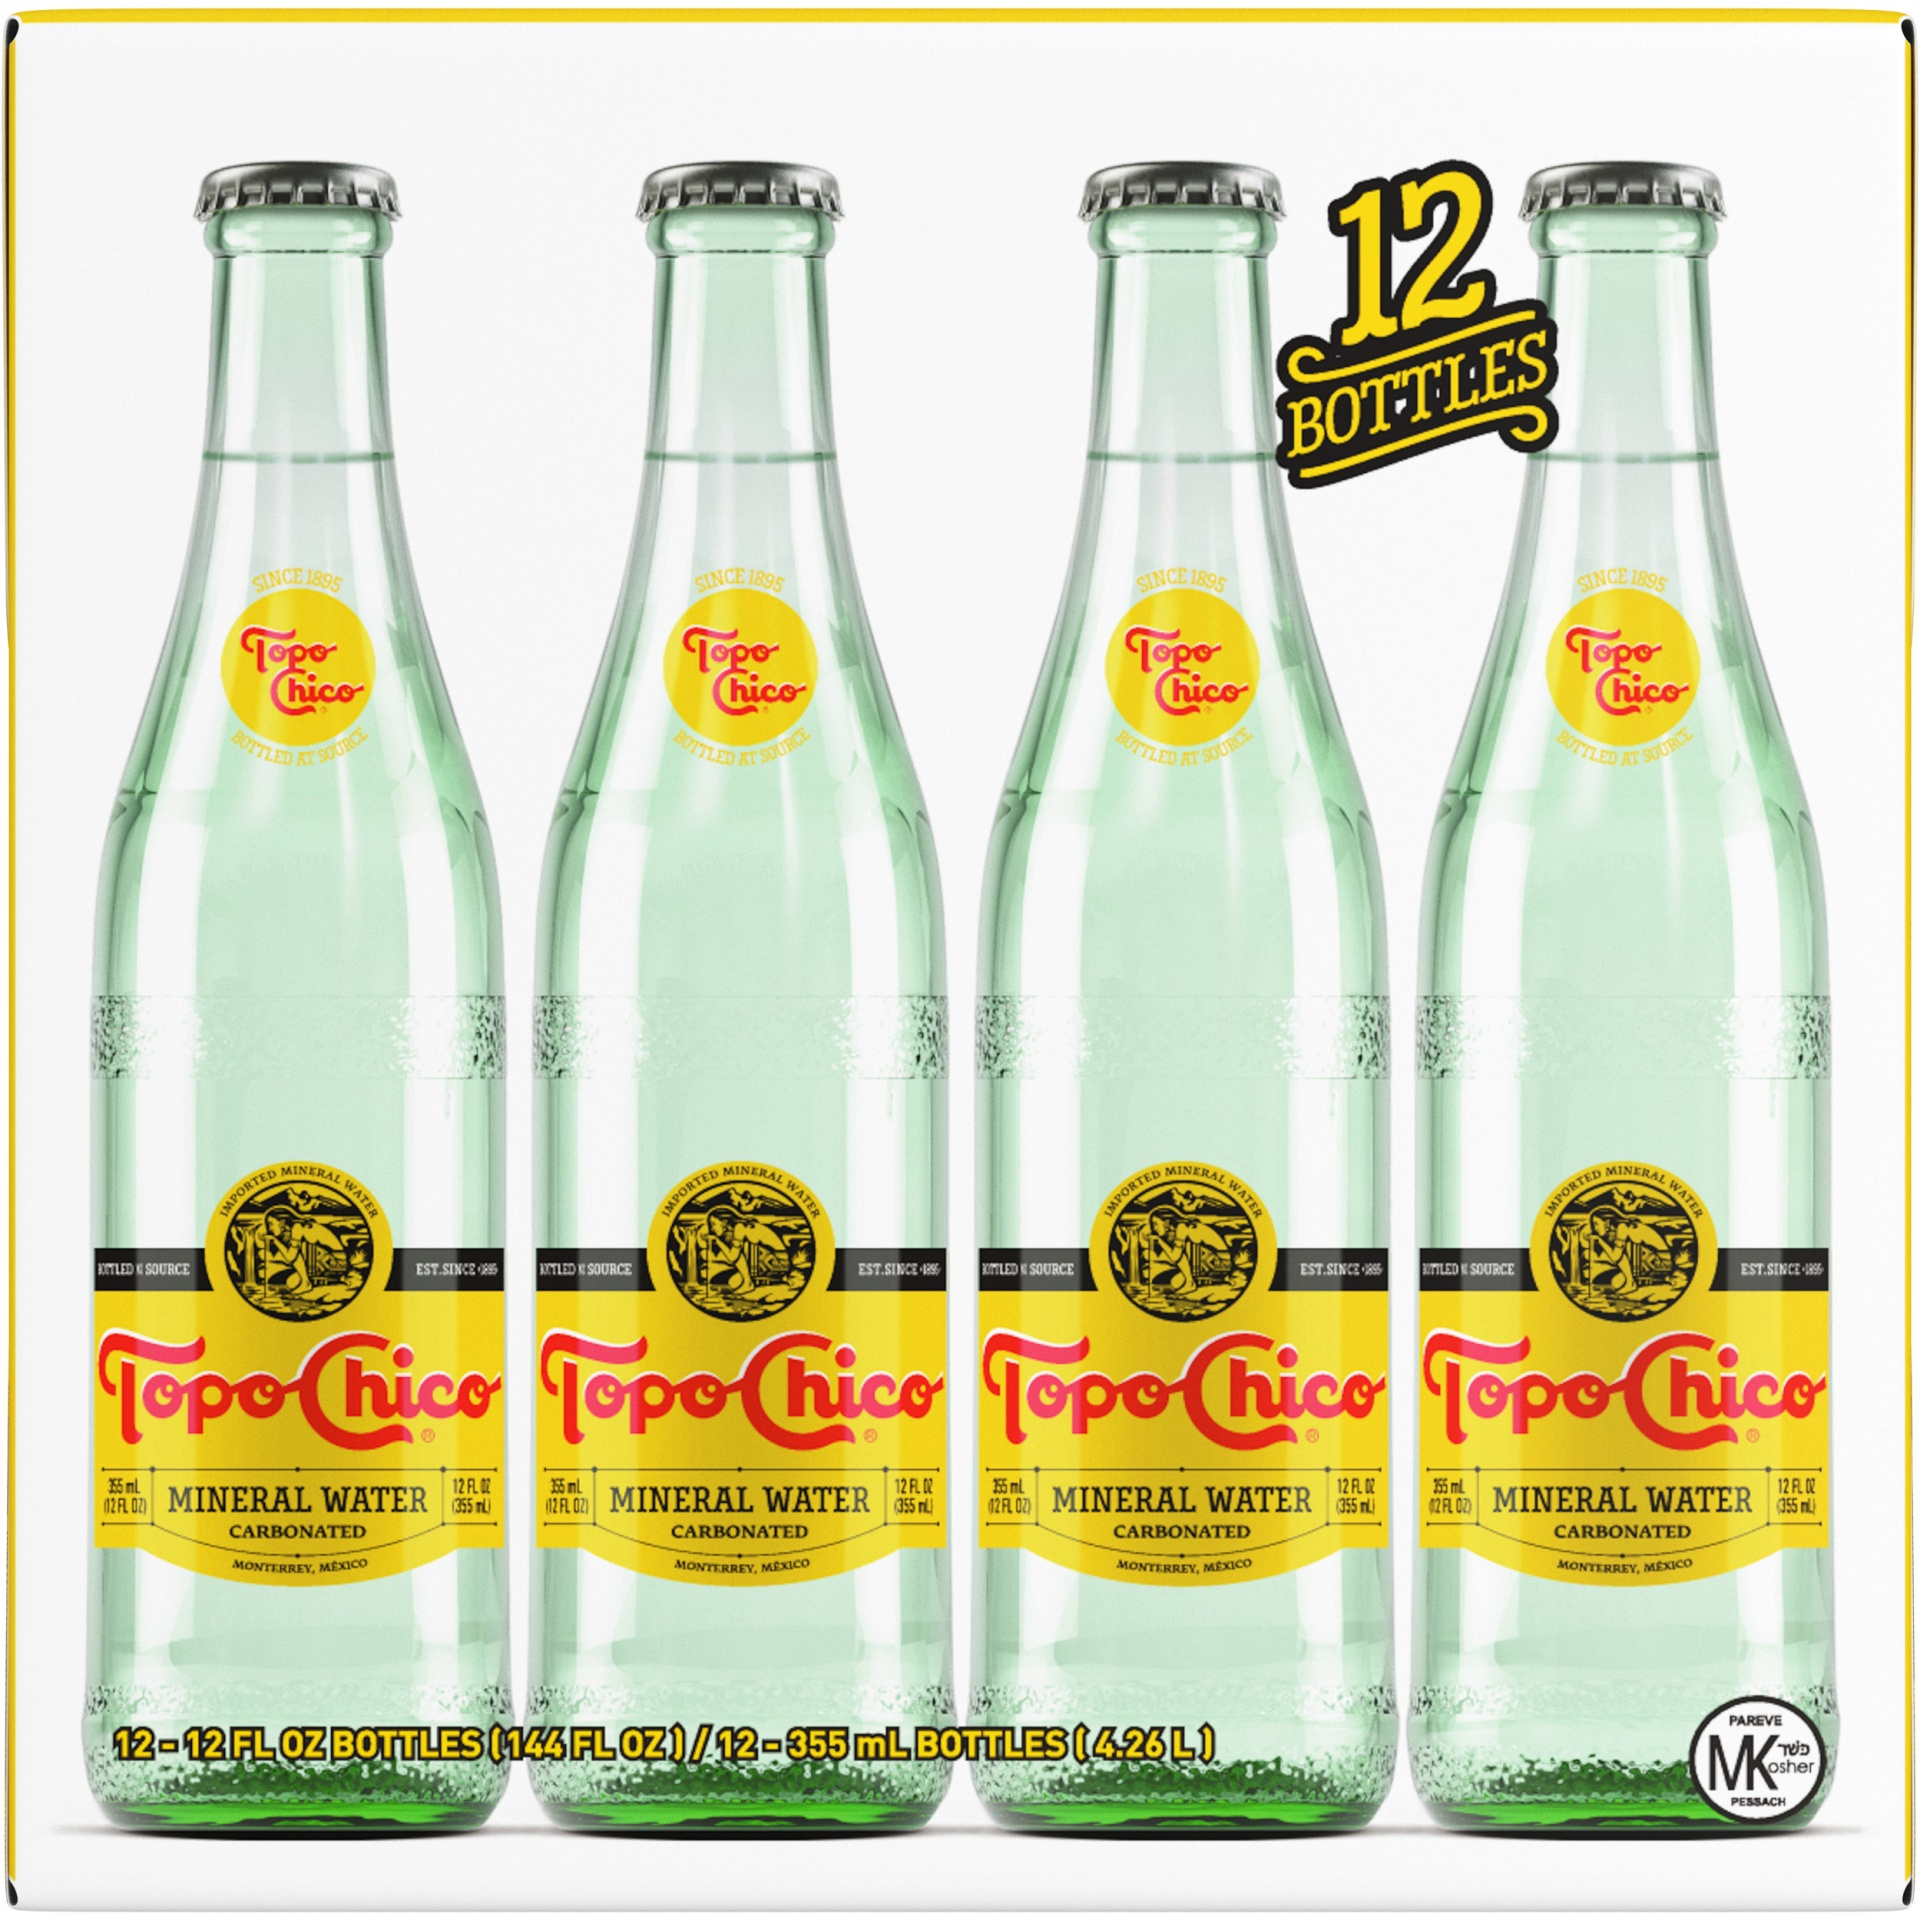 slide 1 of 7, Topo Chico Mineral Water,